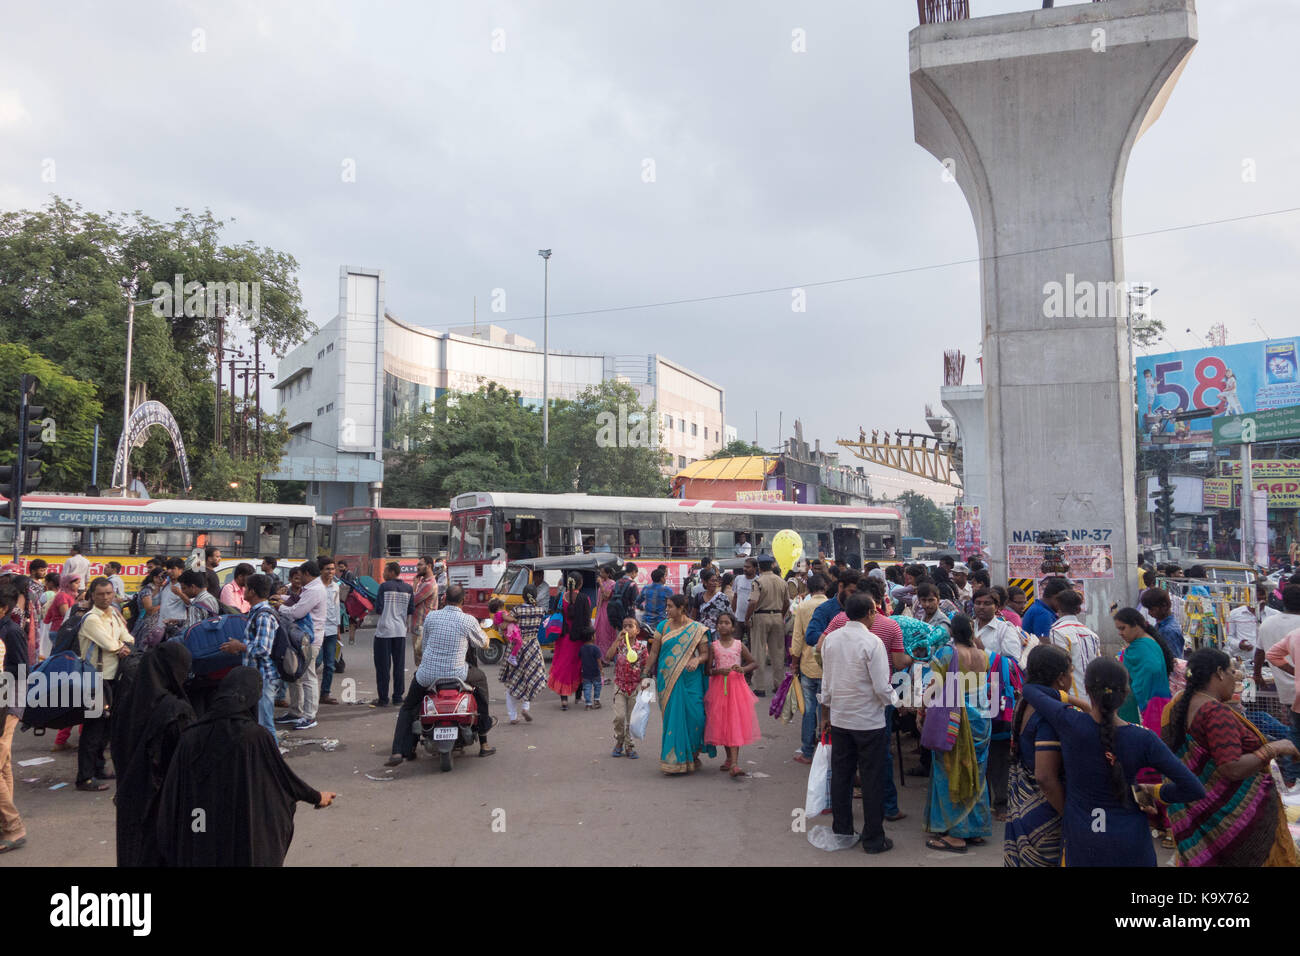 HYDERABAD,INDIA-23th SEPTEMBER,2017. A sreet scene of a busy shopping area in Koti in Hyderabad,India - Stock Image